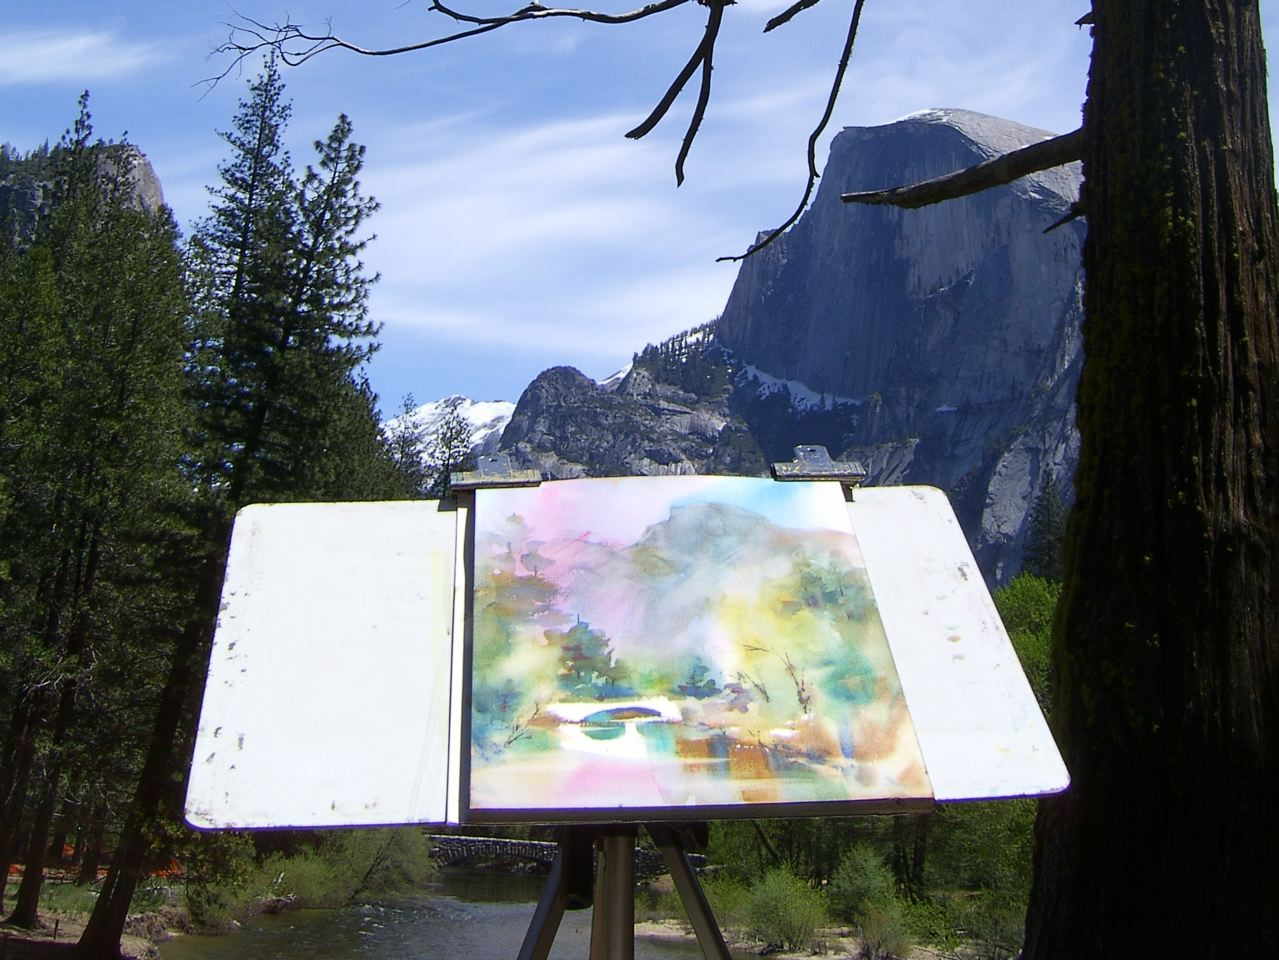 yosemite-painter.jpg